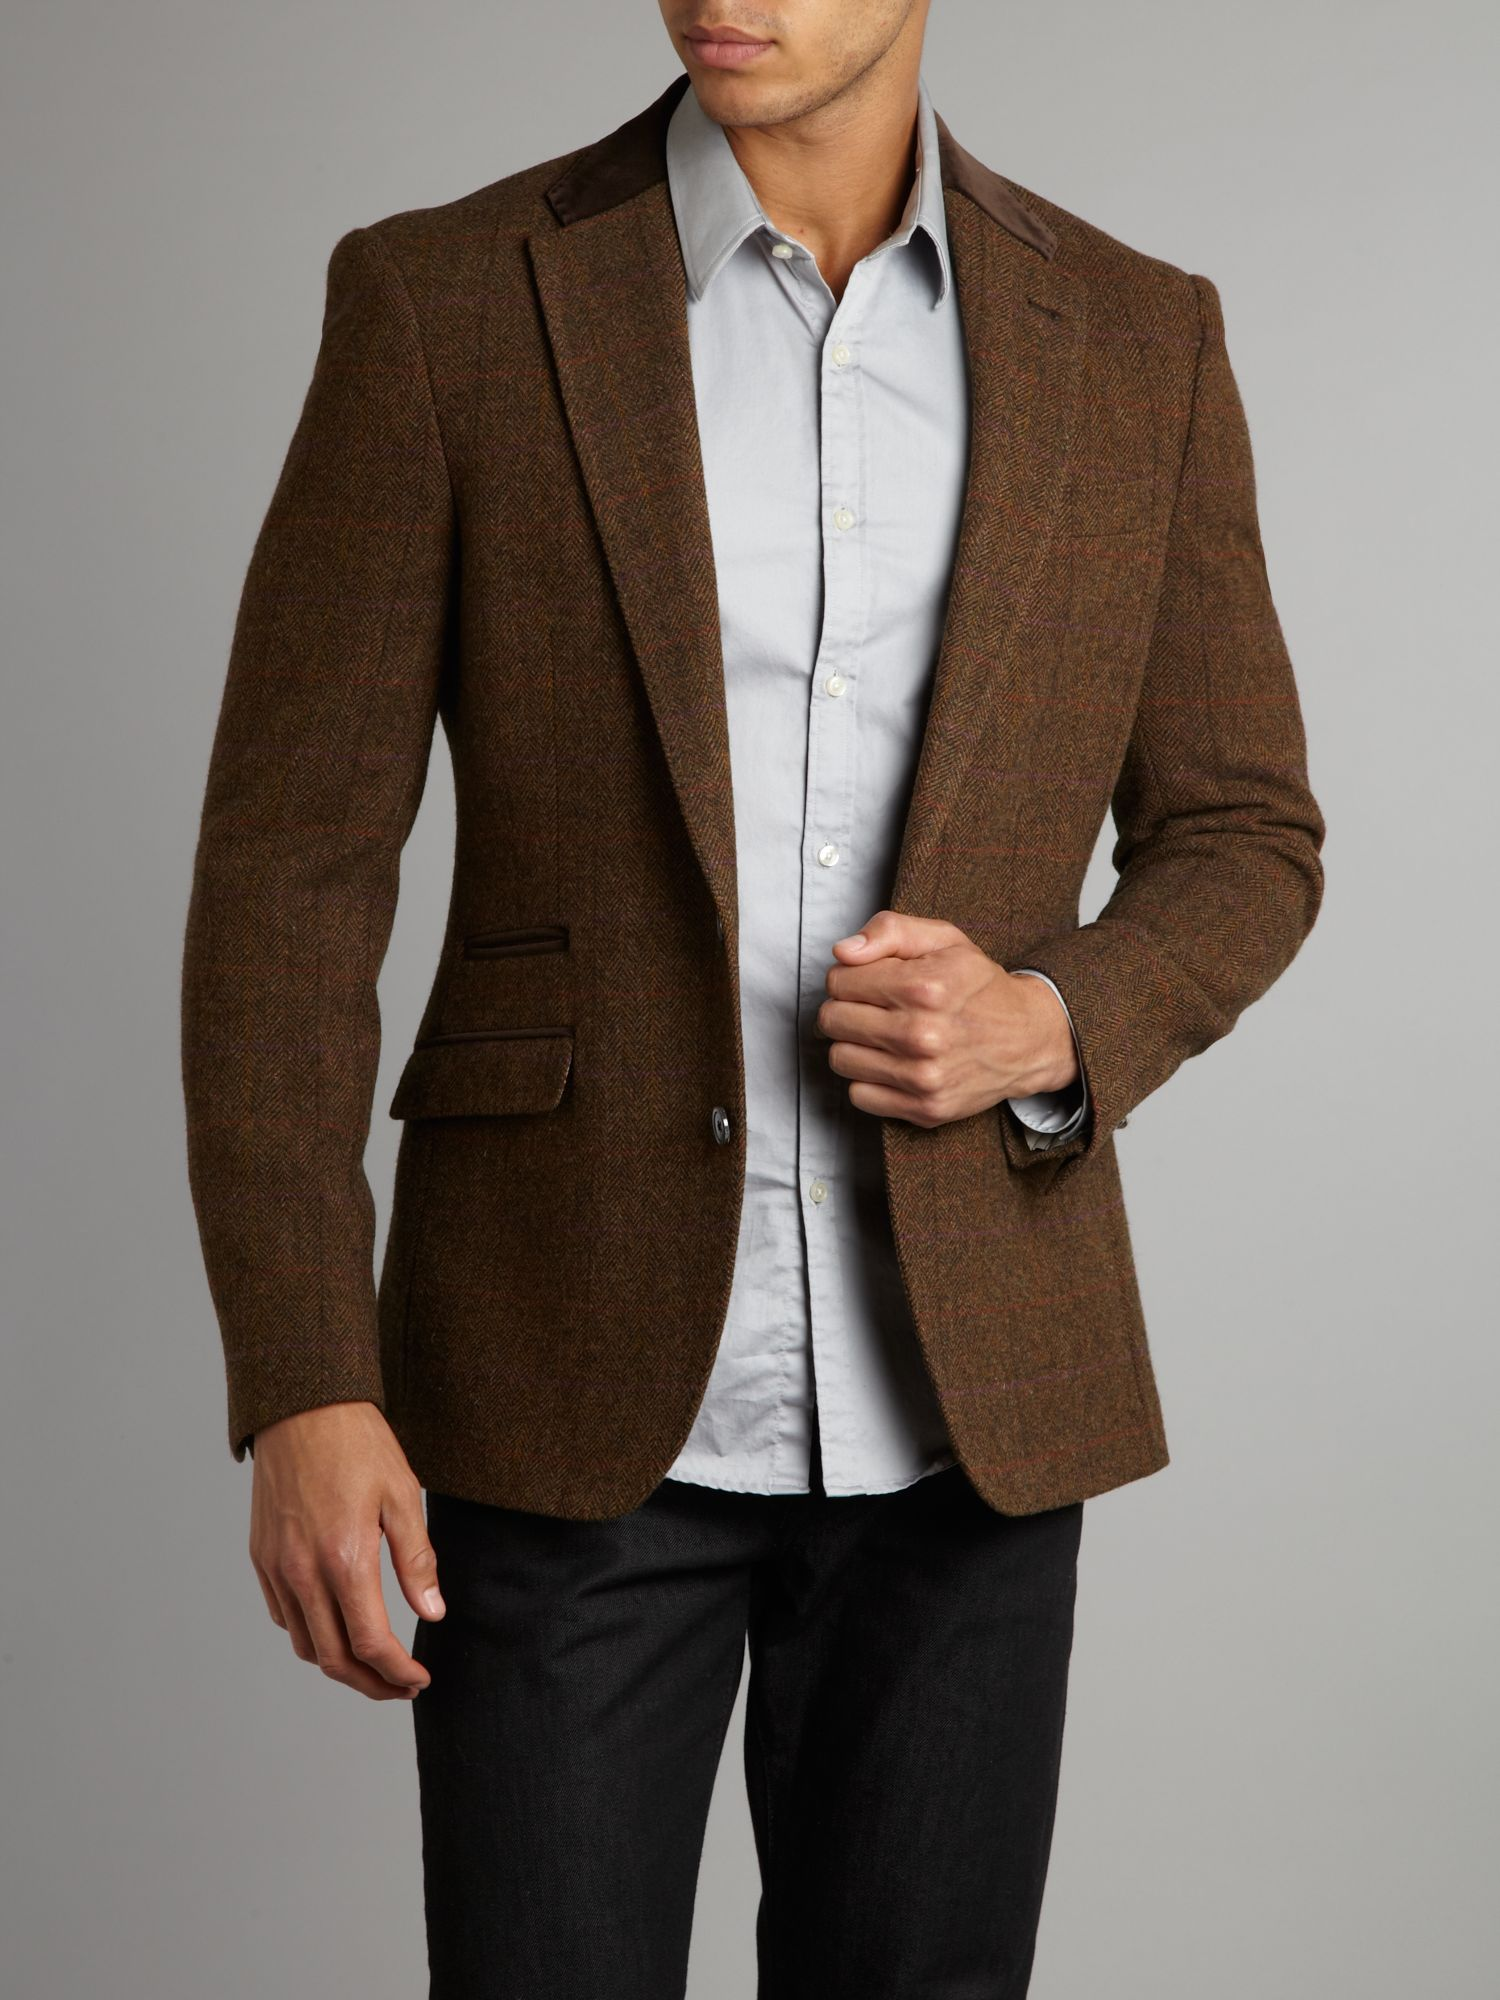 You might automatically think of a tweed jacket to come in a traditional green colour, however, brown and grey tweed is just as traditional and provides a more versatile pallet to work with. For an excellent smart casual style, try combining a khaki, brown or grey coloured jacket with a crisp button-down shirt.